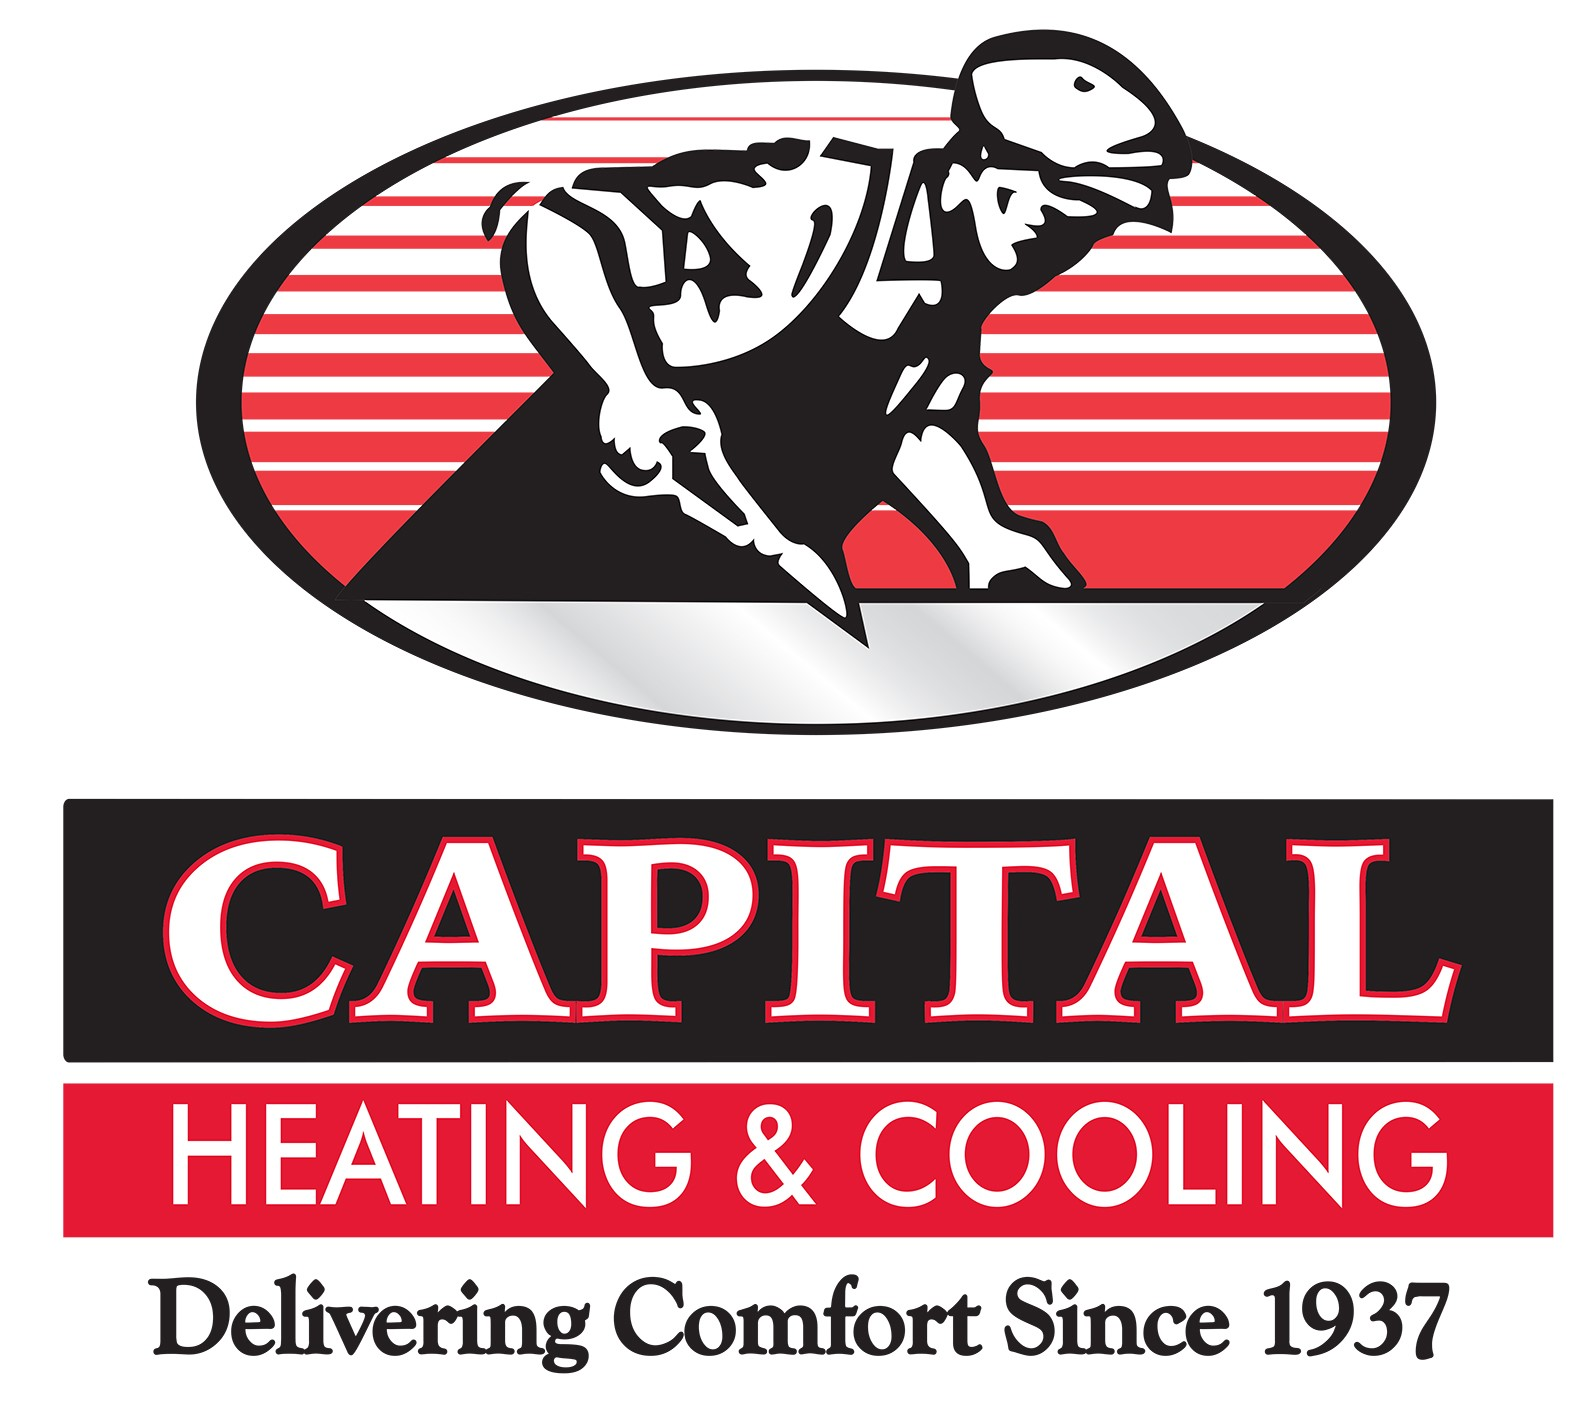 CAPITAL HEATING